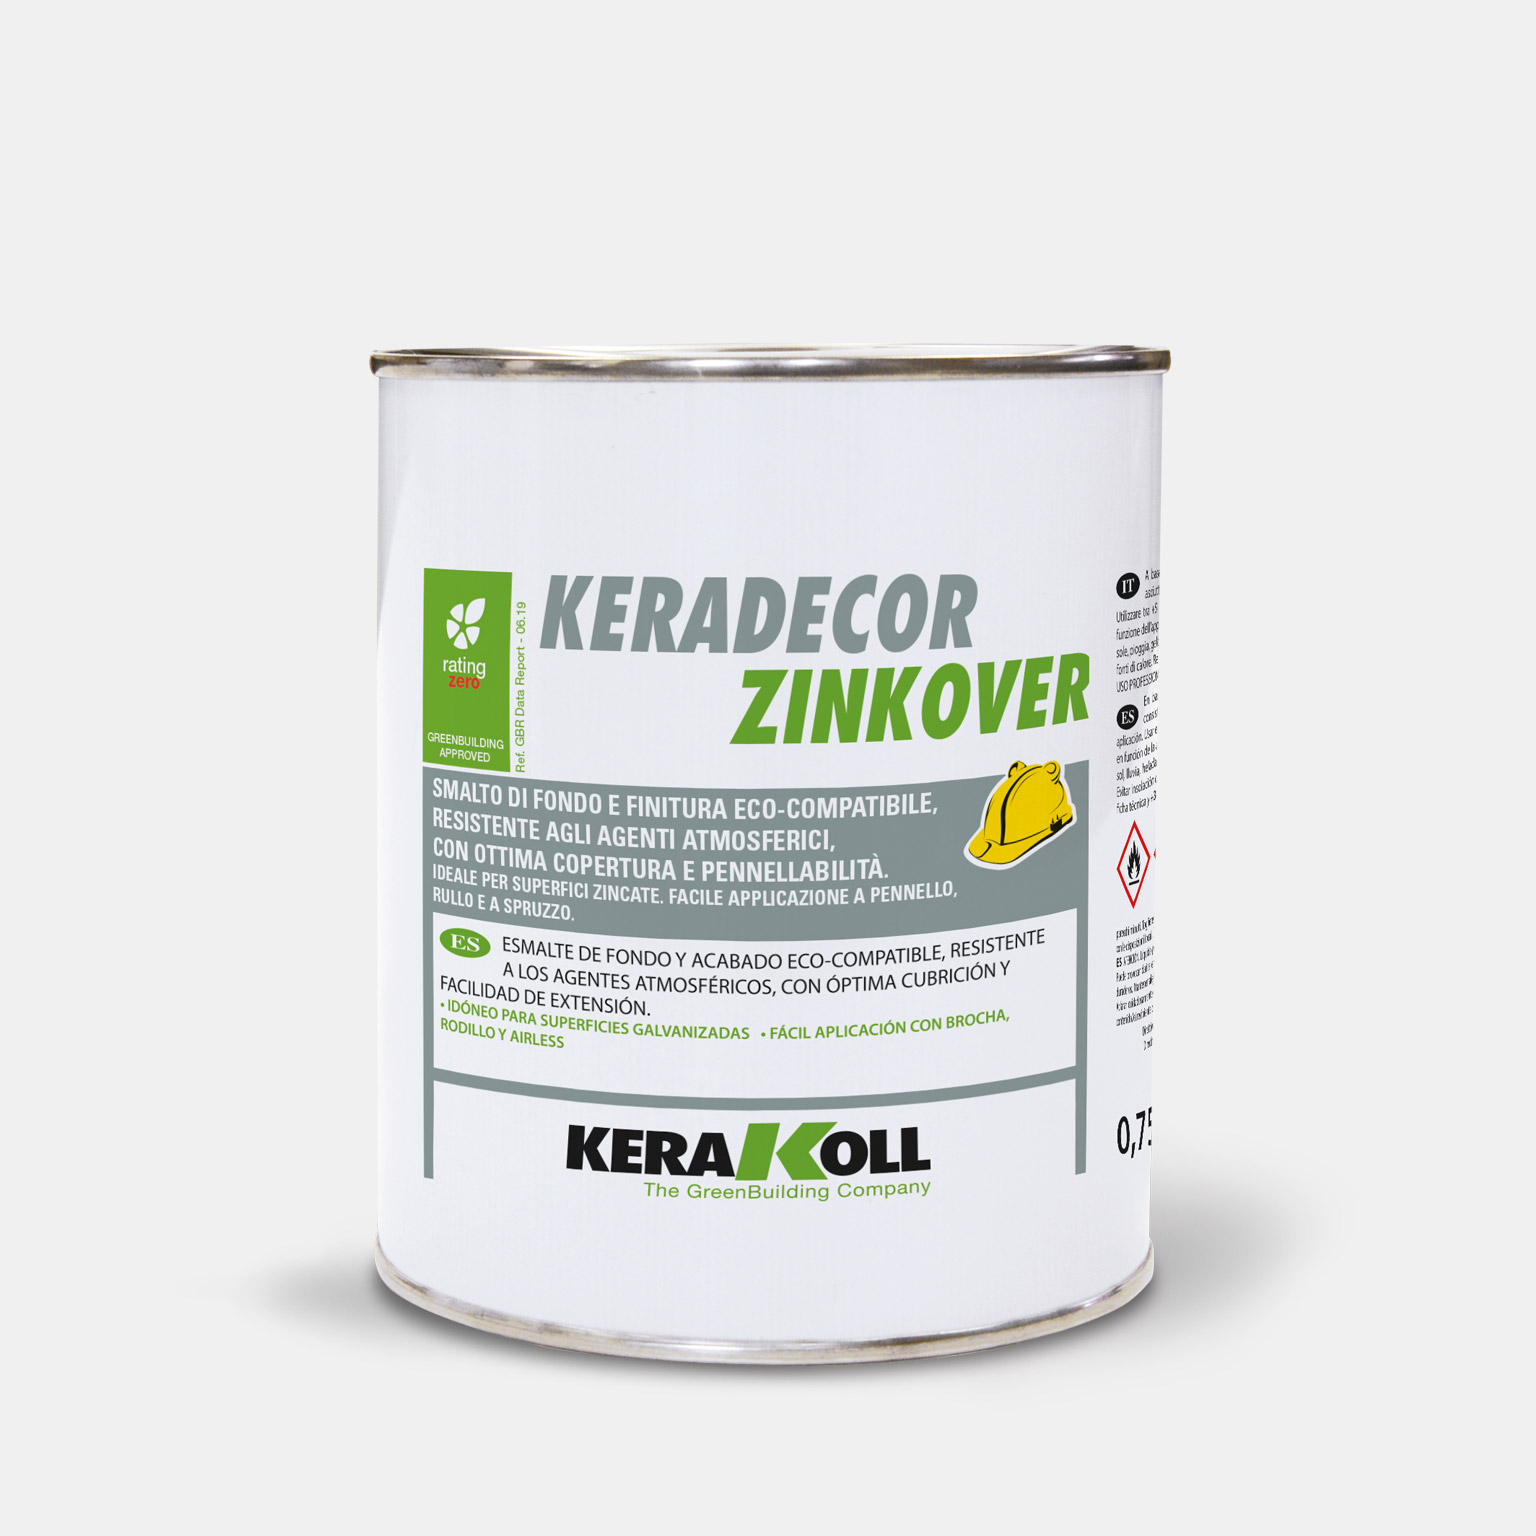 Keradecor Zinkover - immagine pack